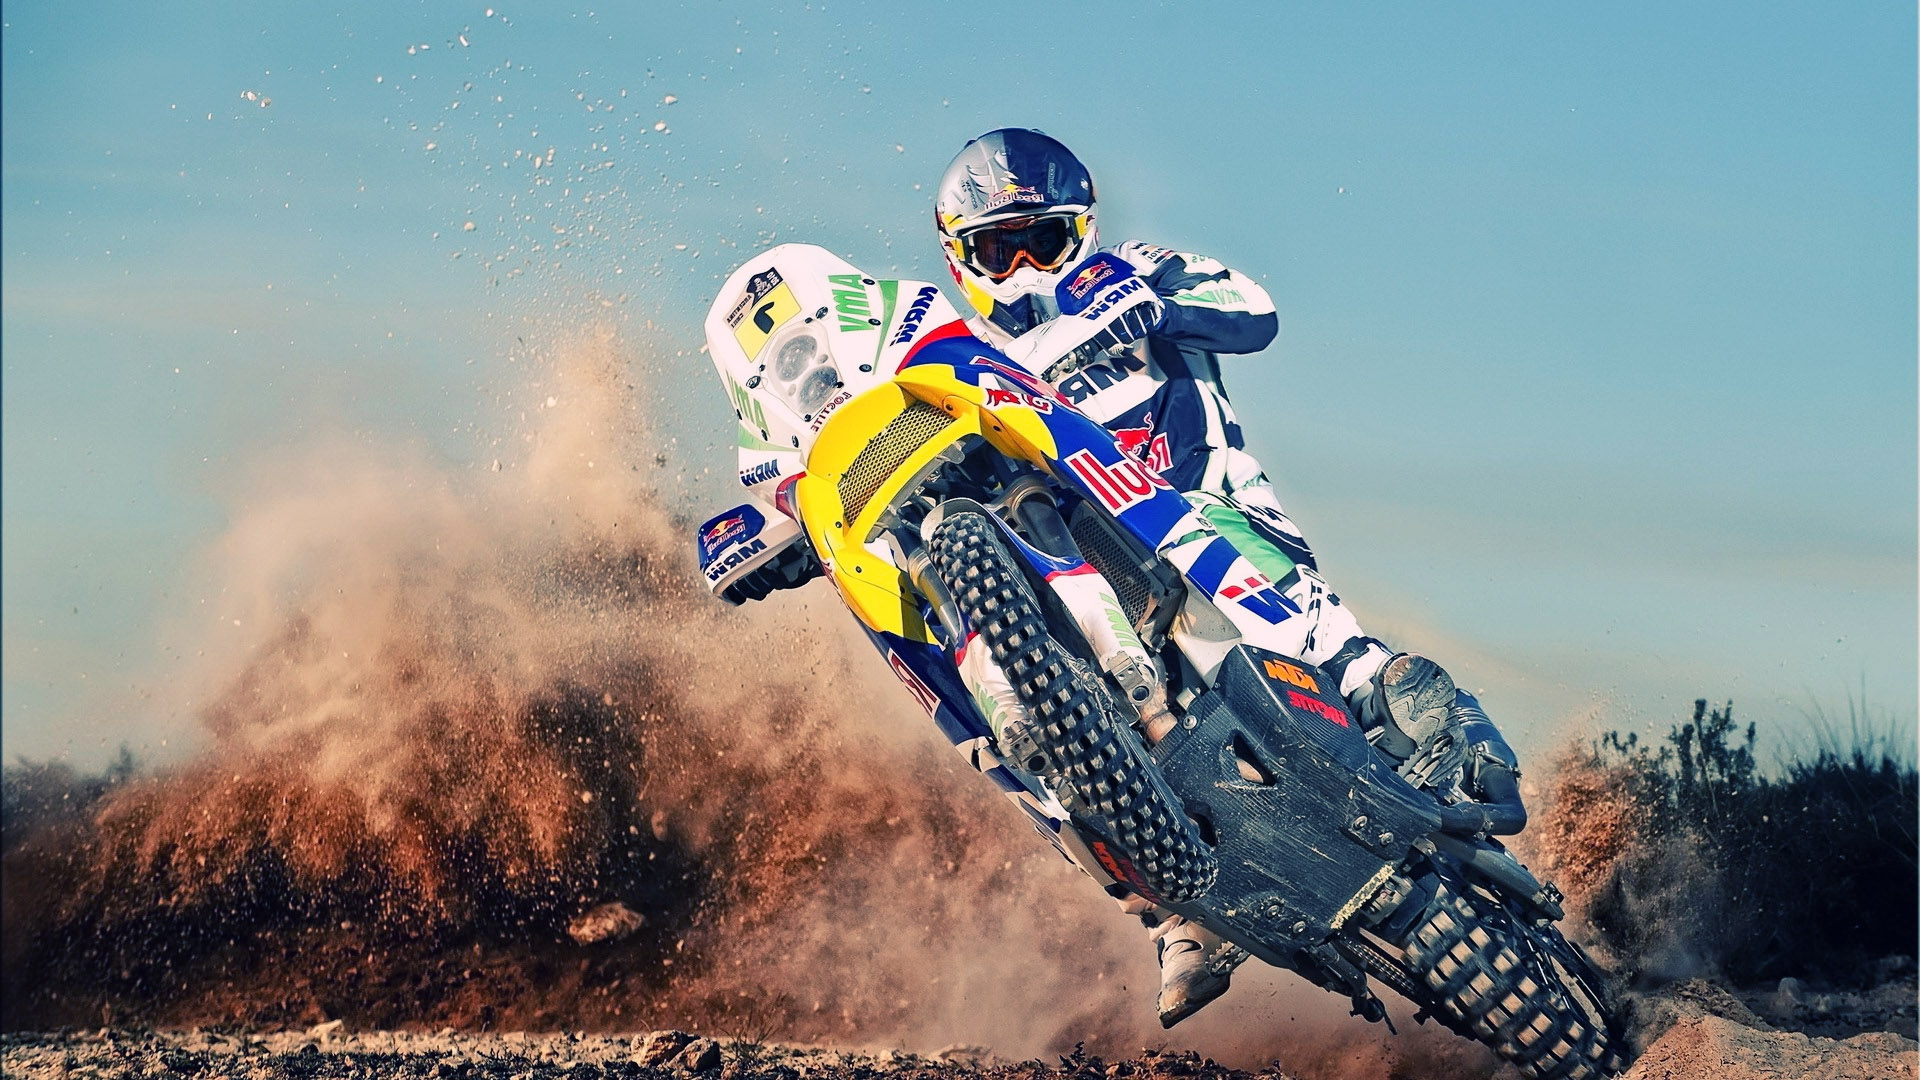 Wallpaperwiki Free Hd Dirt Bike Wallpaper Pic Wpe0010274